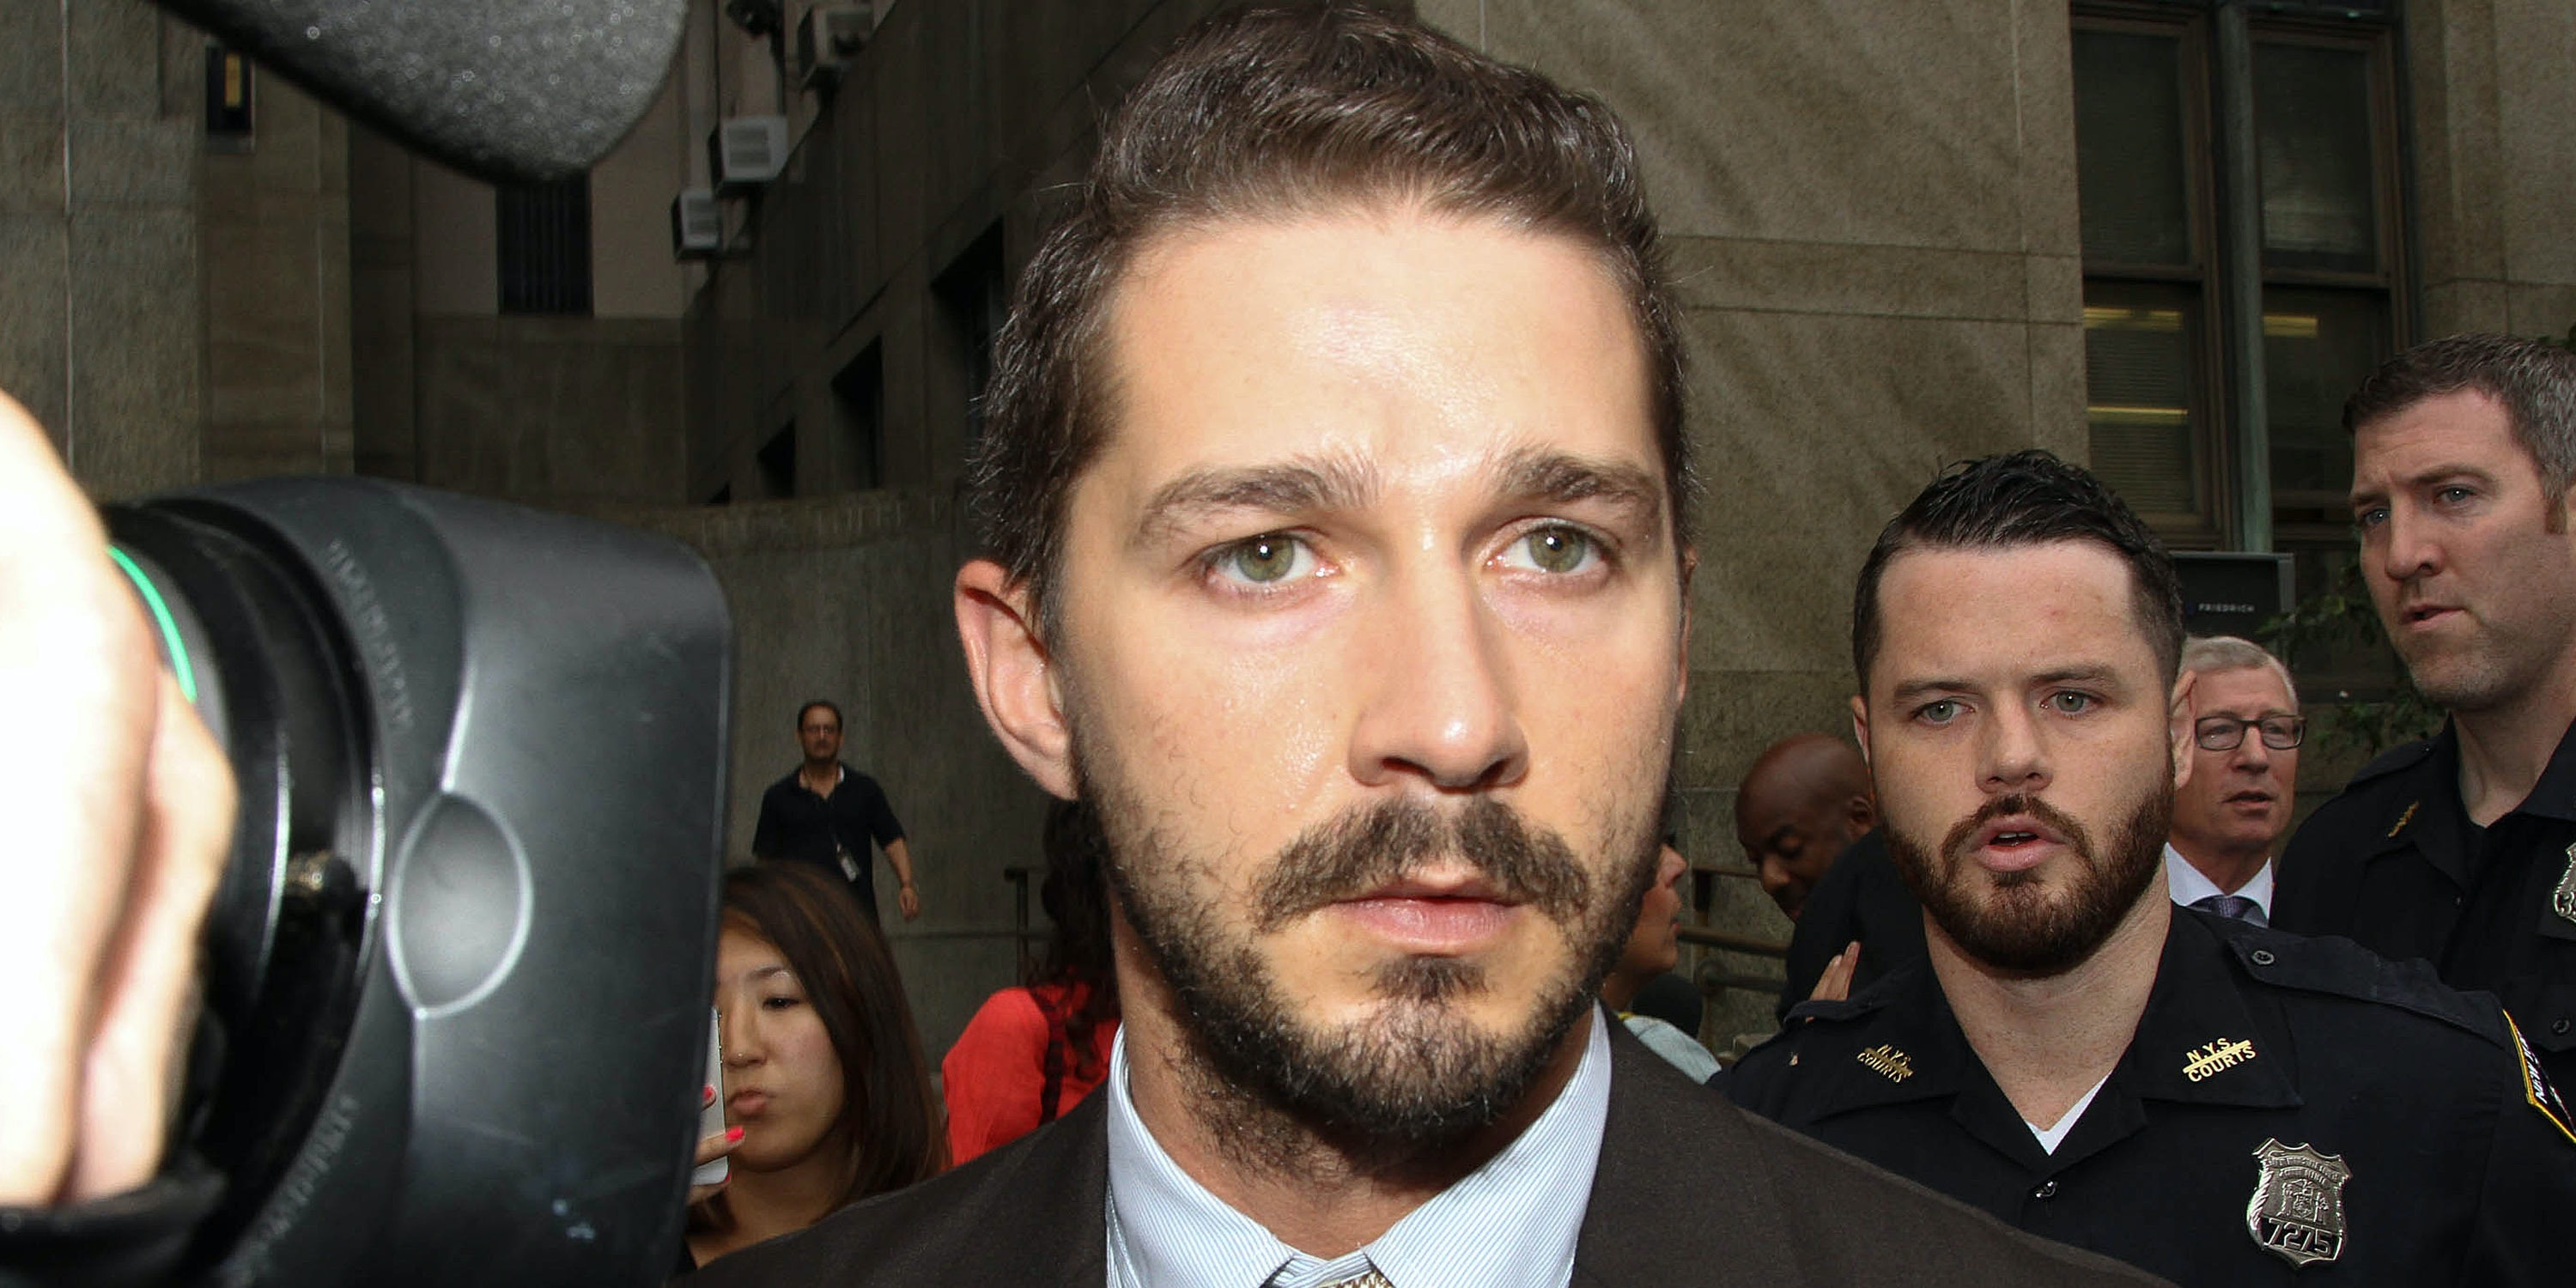 Shia LaBeouf leaves criminal court on July 24, 2014 in New York City.